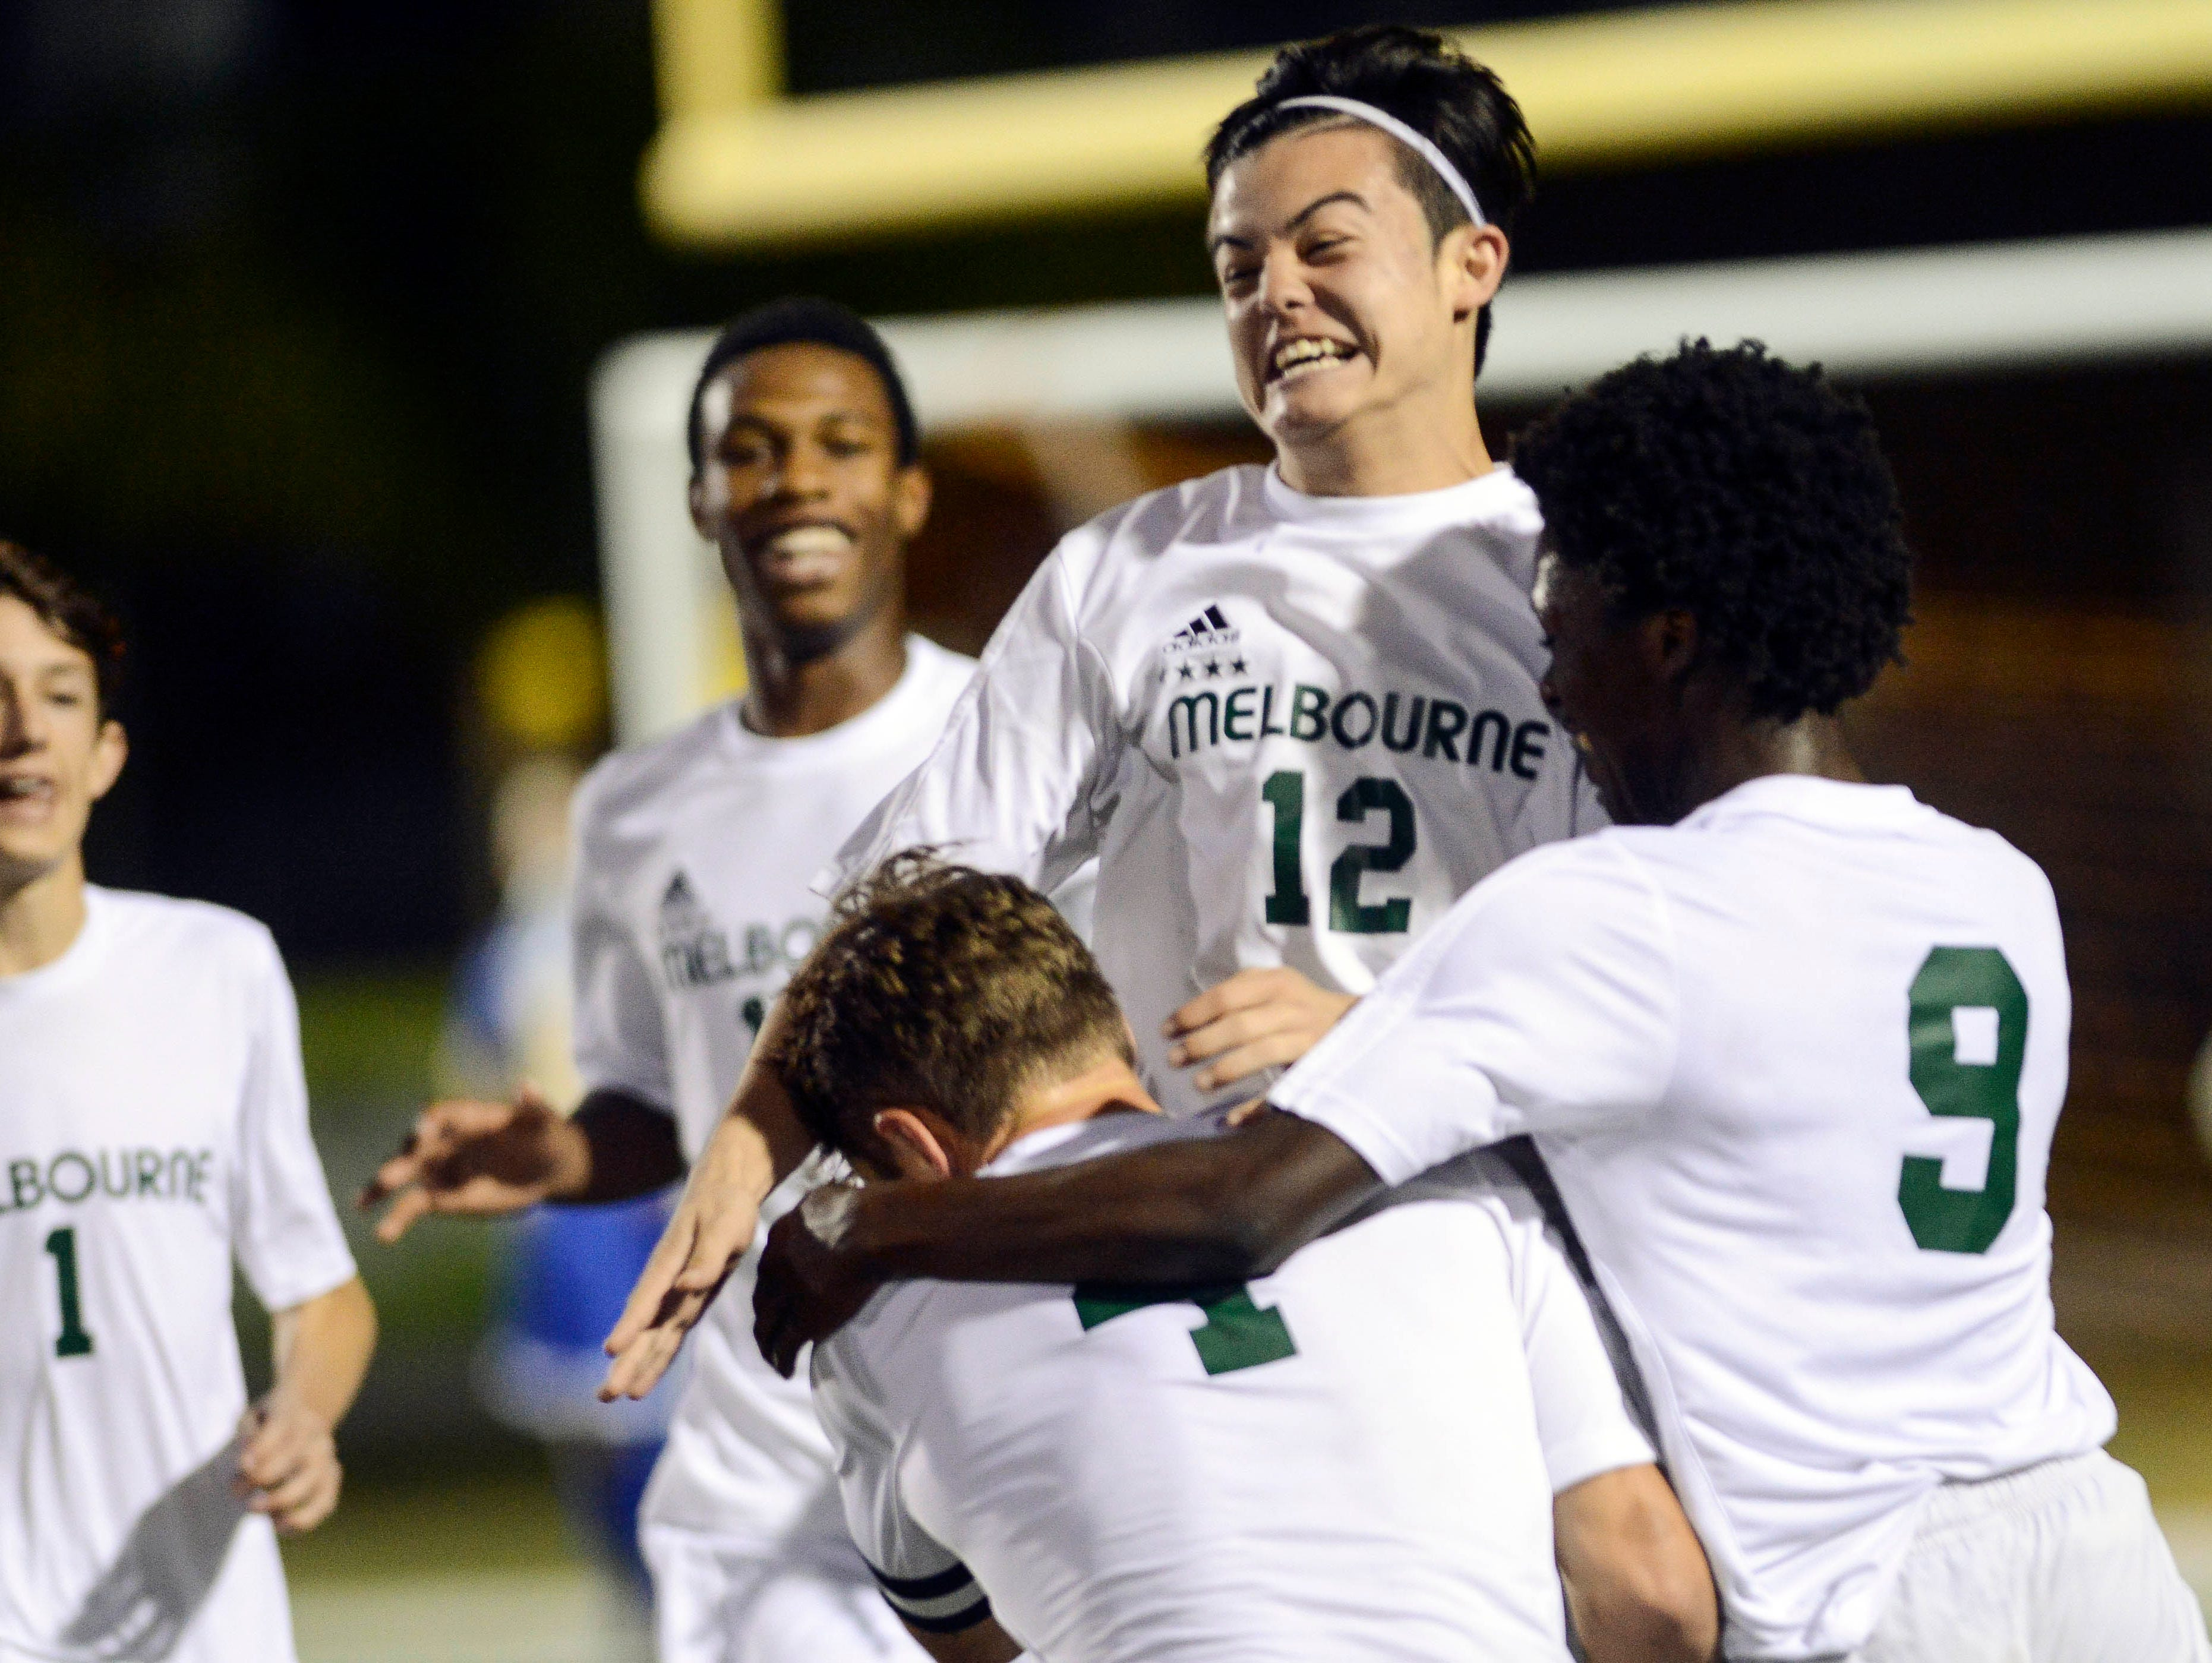 Melbourne players celebrate a goal in the District 6-4A tournament.